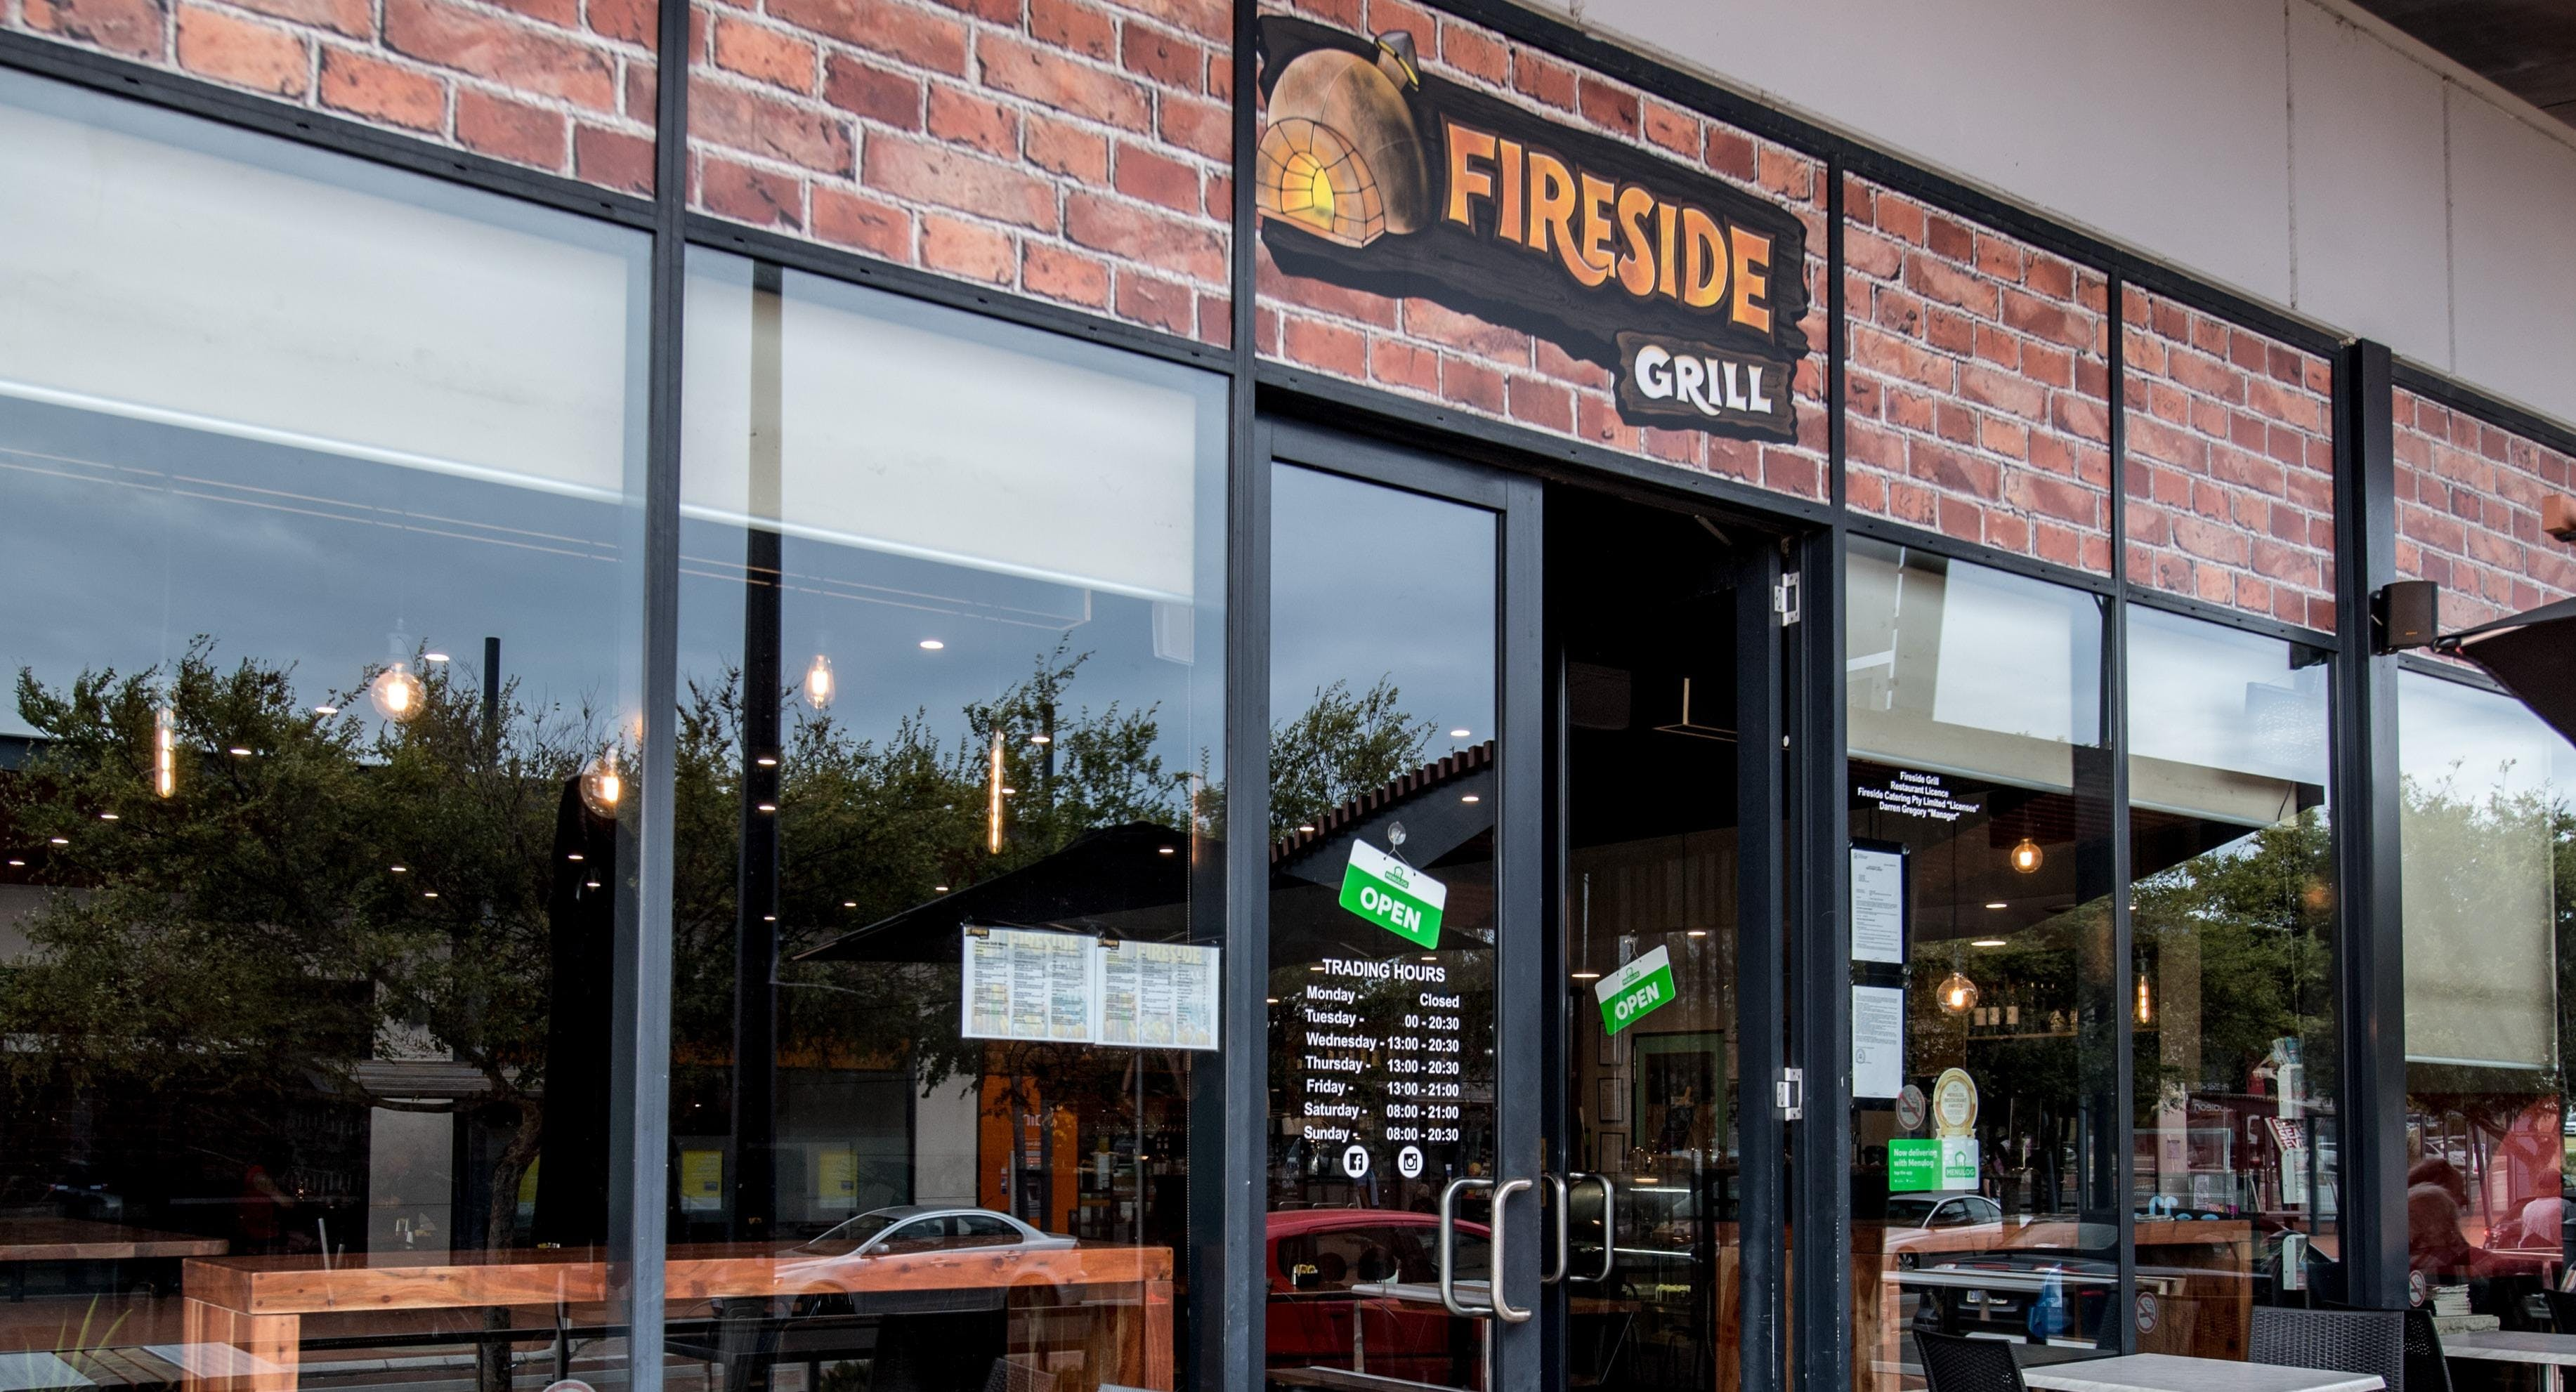 Fireside Grill Perth image 2